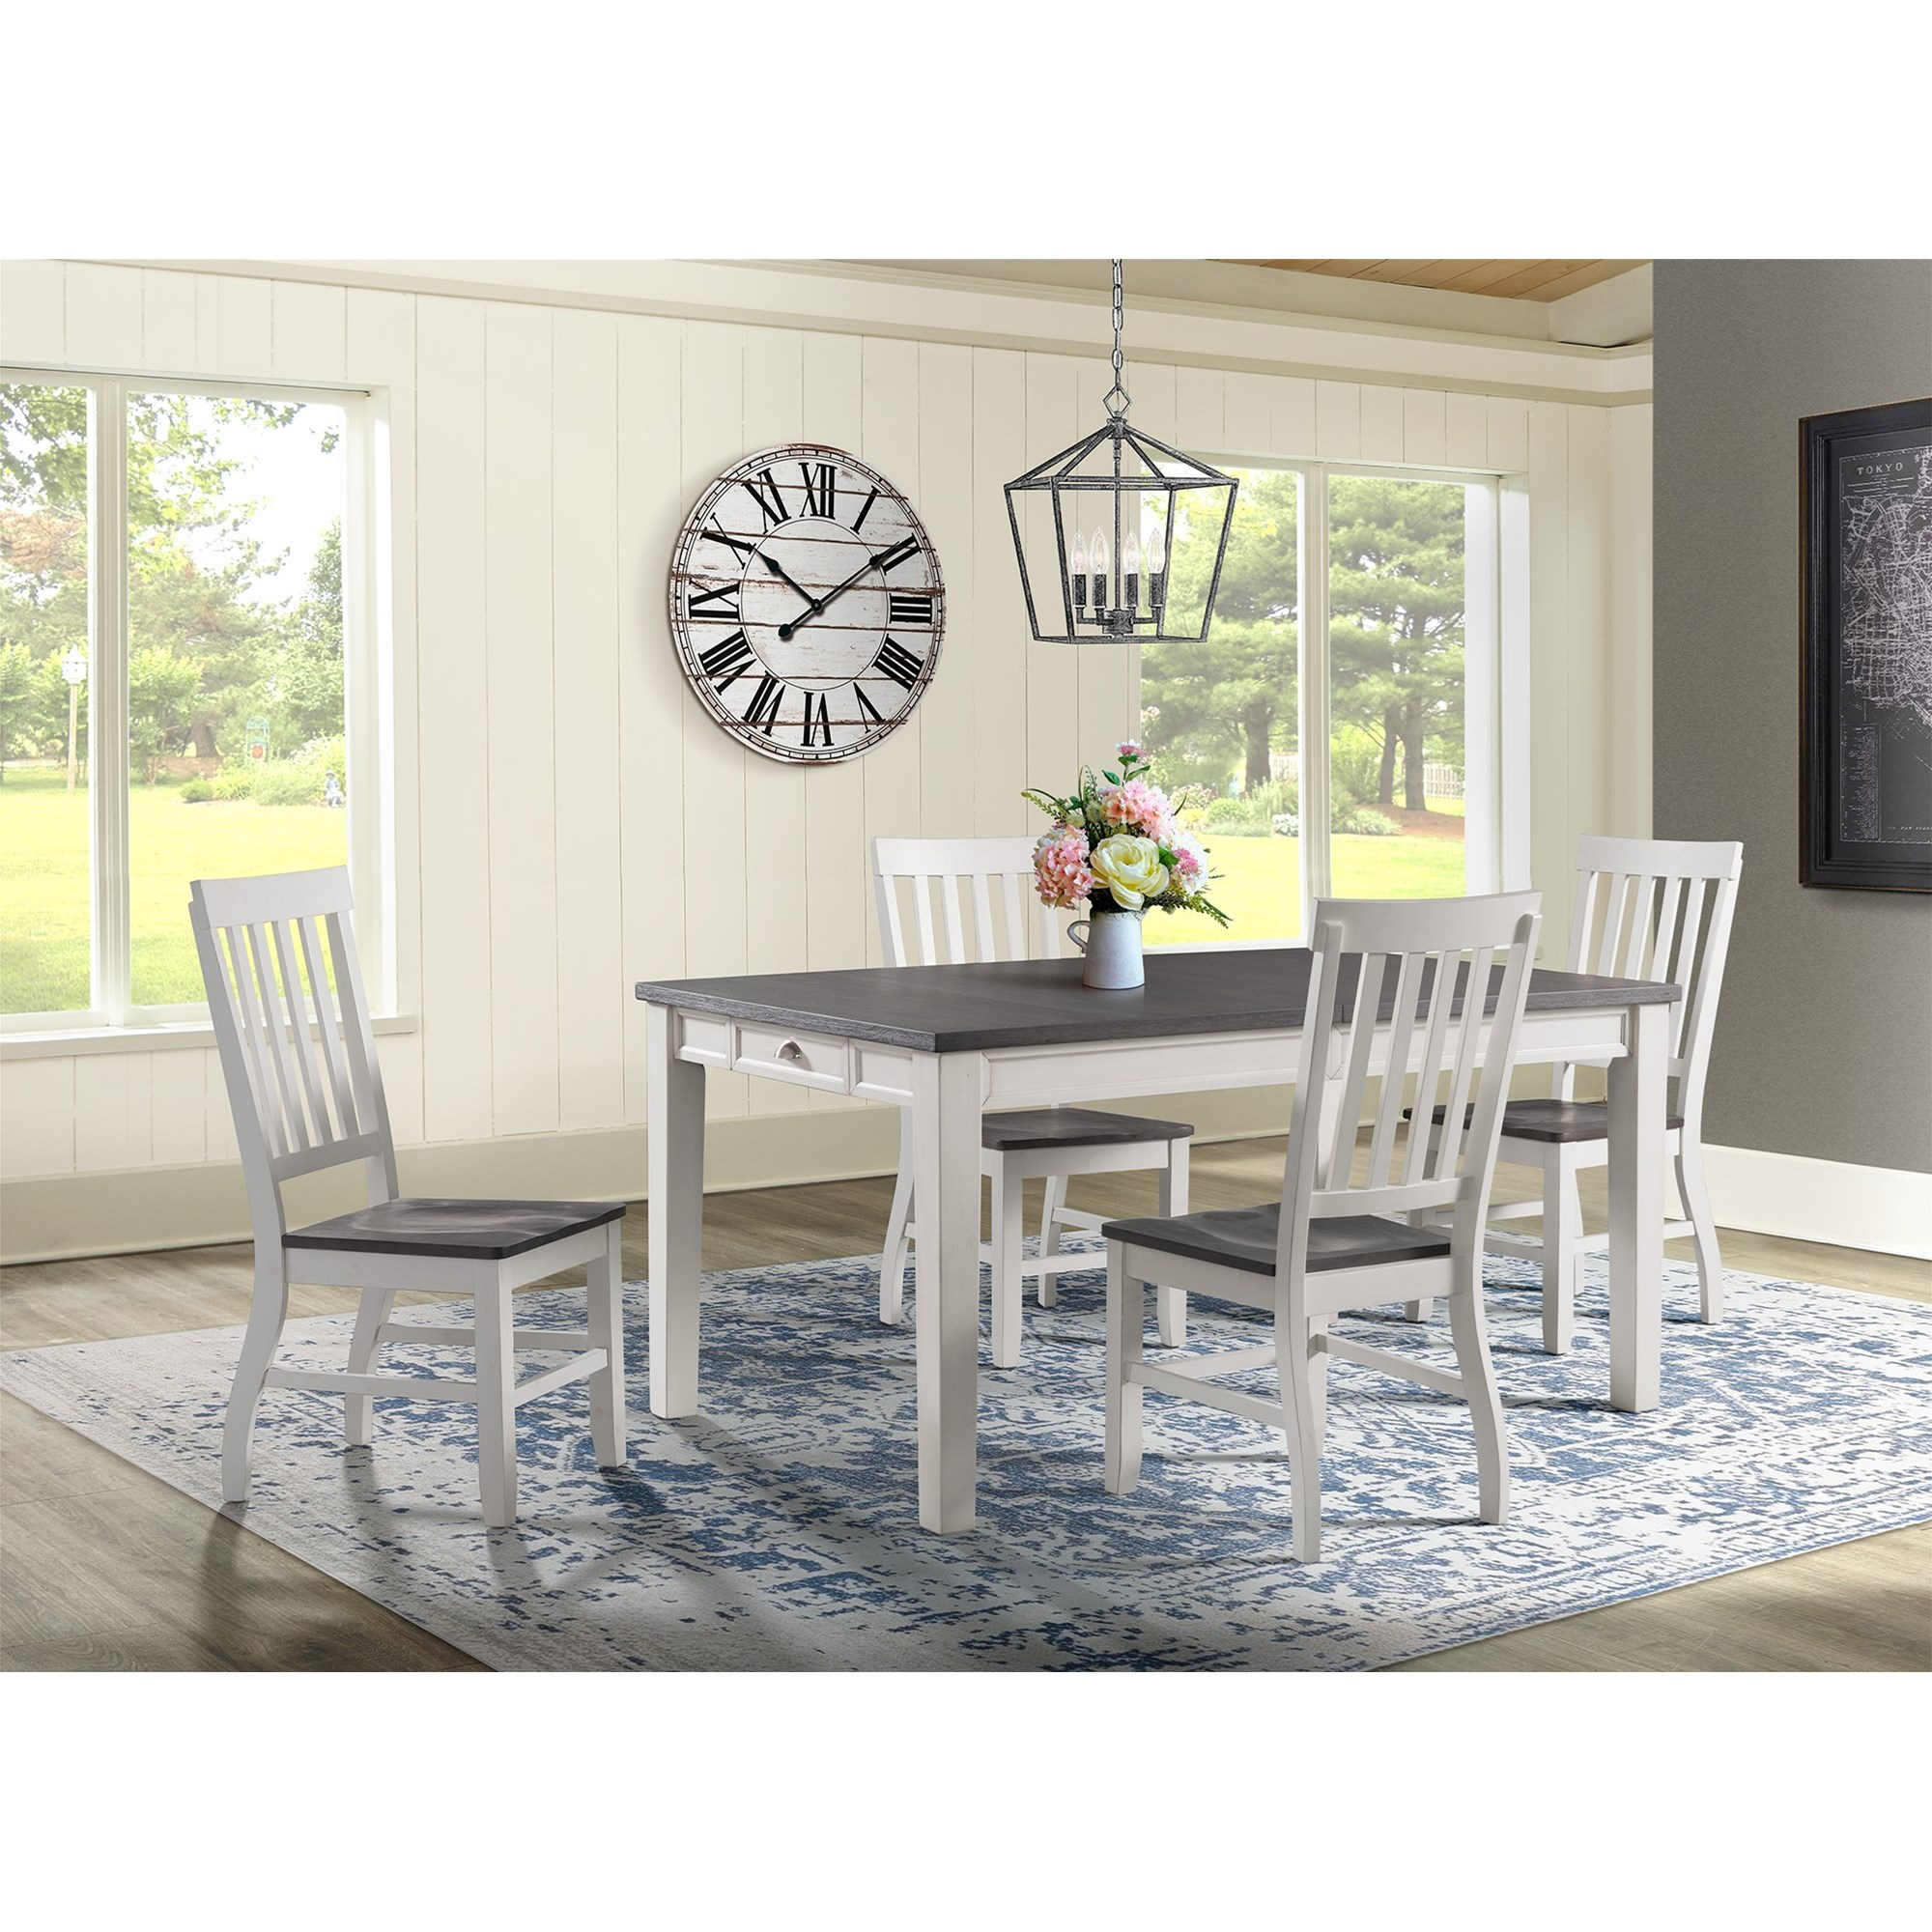 Kayla 5-Piece Dining Table and Chair Set by Elements International at Zak's Home